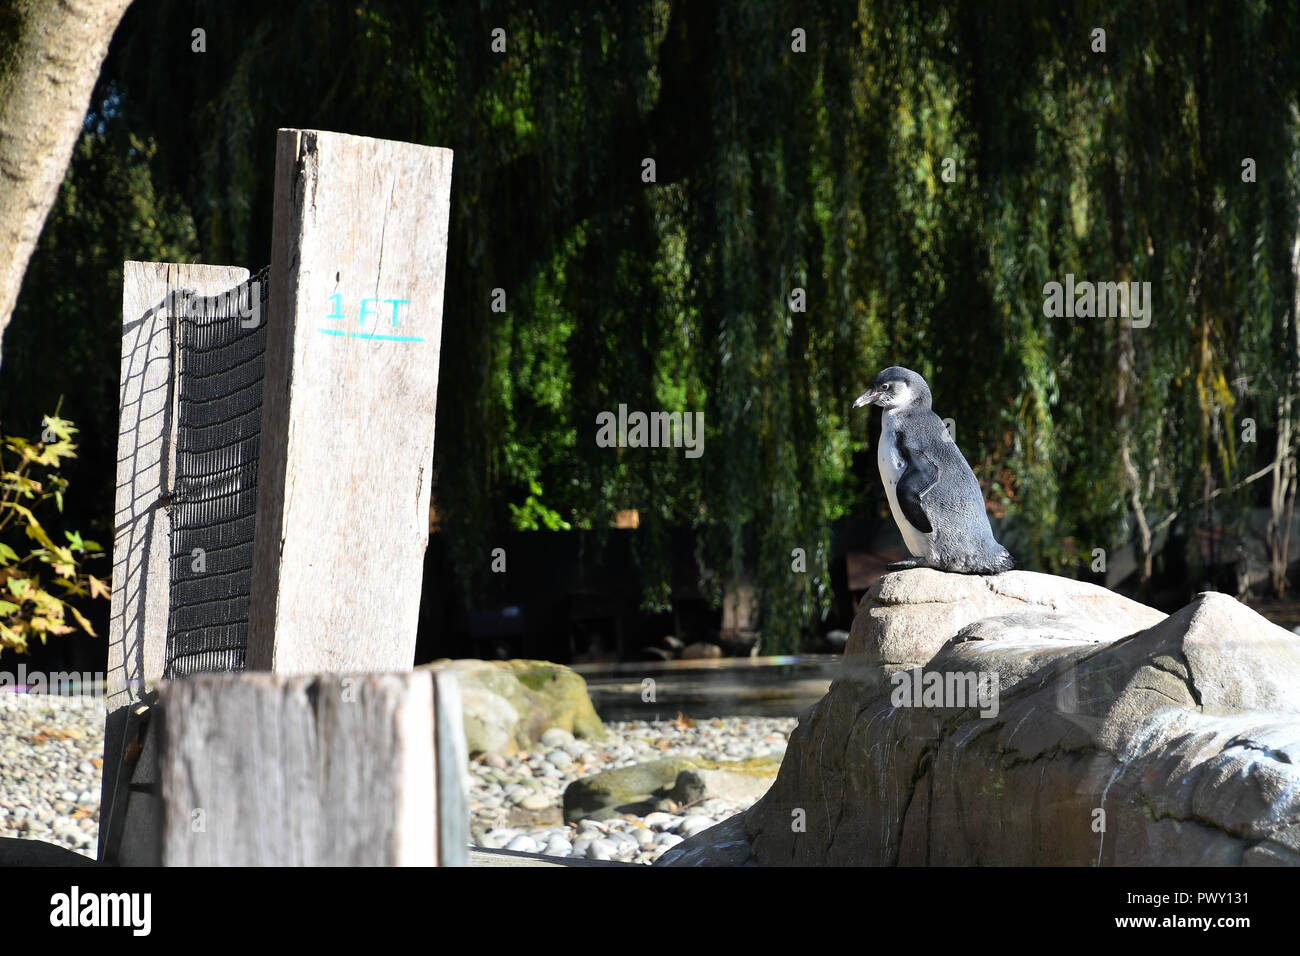 London, UK. 18th Oct 2018. Penguins at ZLS London Zoo's Asiatic lions celebrate the advent of autumn with scented treat, London, UK. 18 October 2018. 18 October 2018. Credit: Picture Capital/Alamy Live News - Stock Image